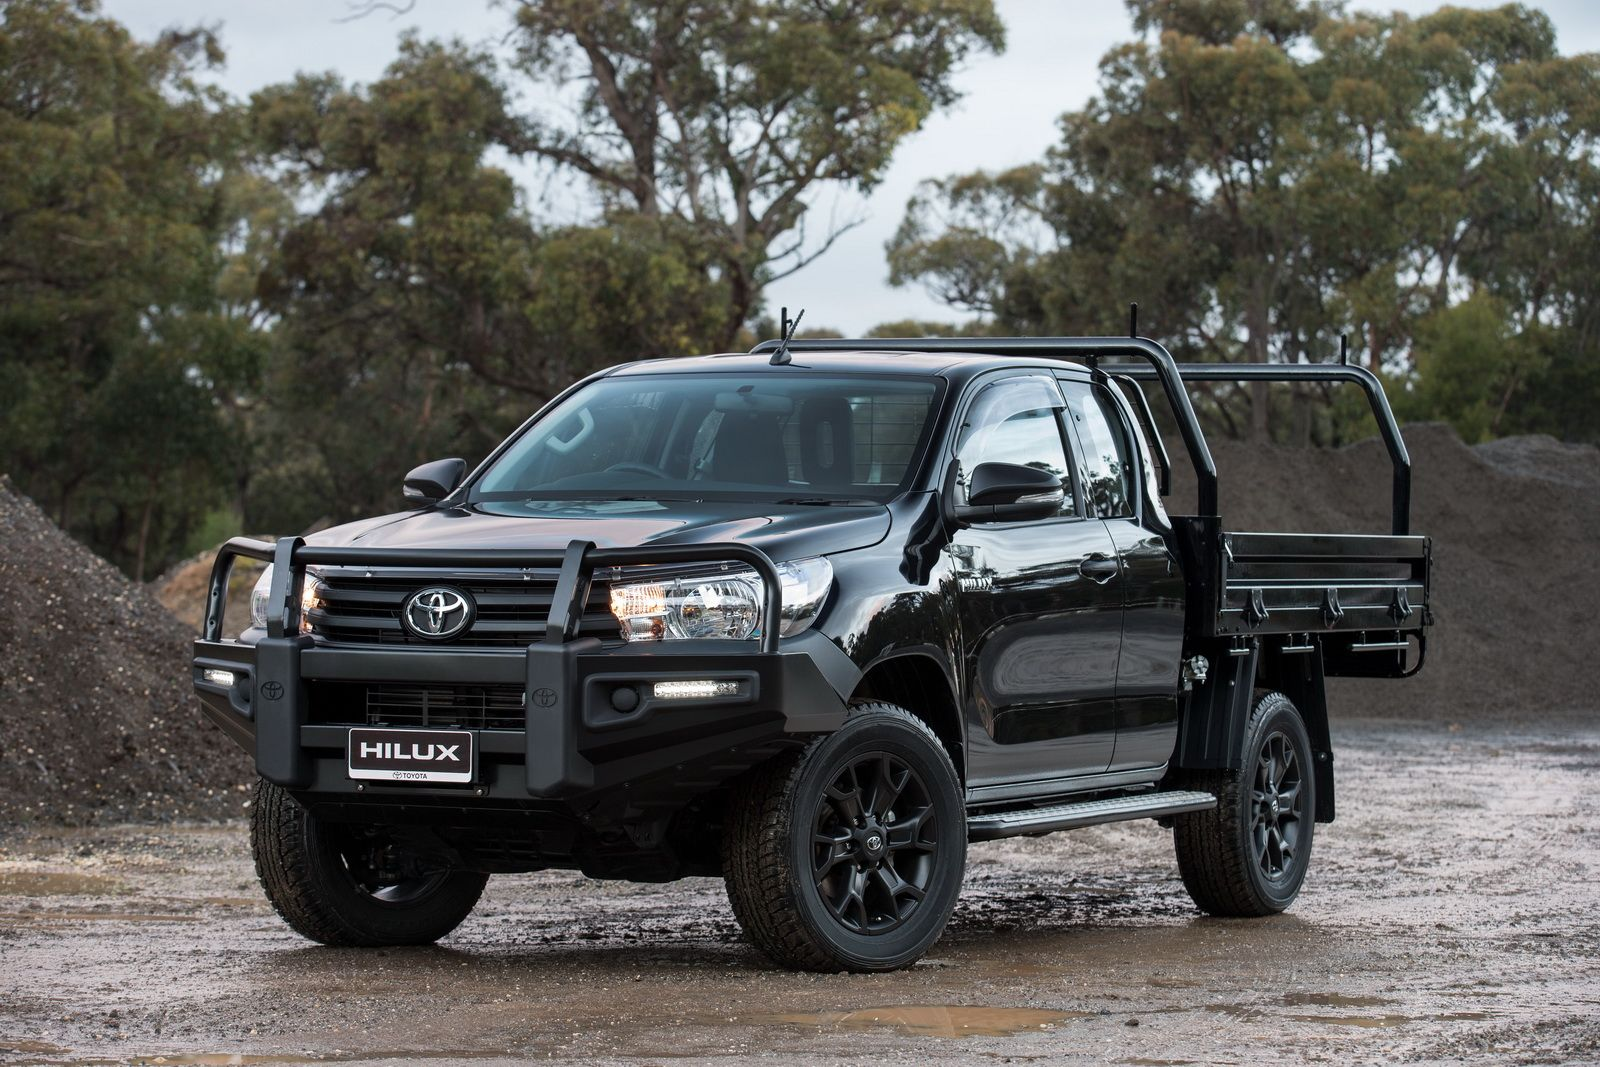 new toyota hilux receives a plethora of rugged accessories to make